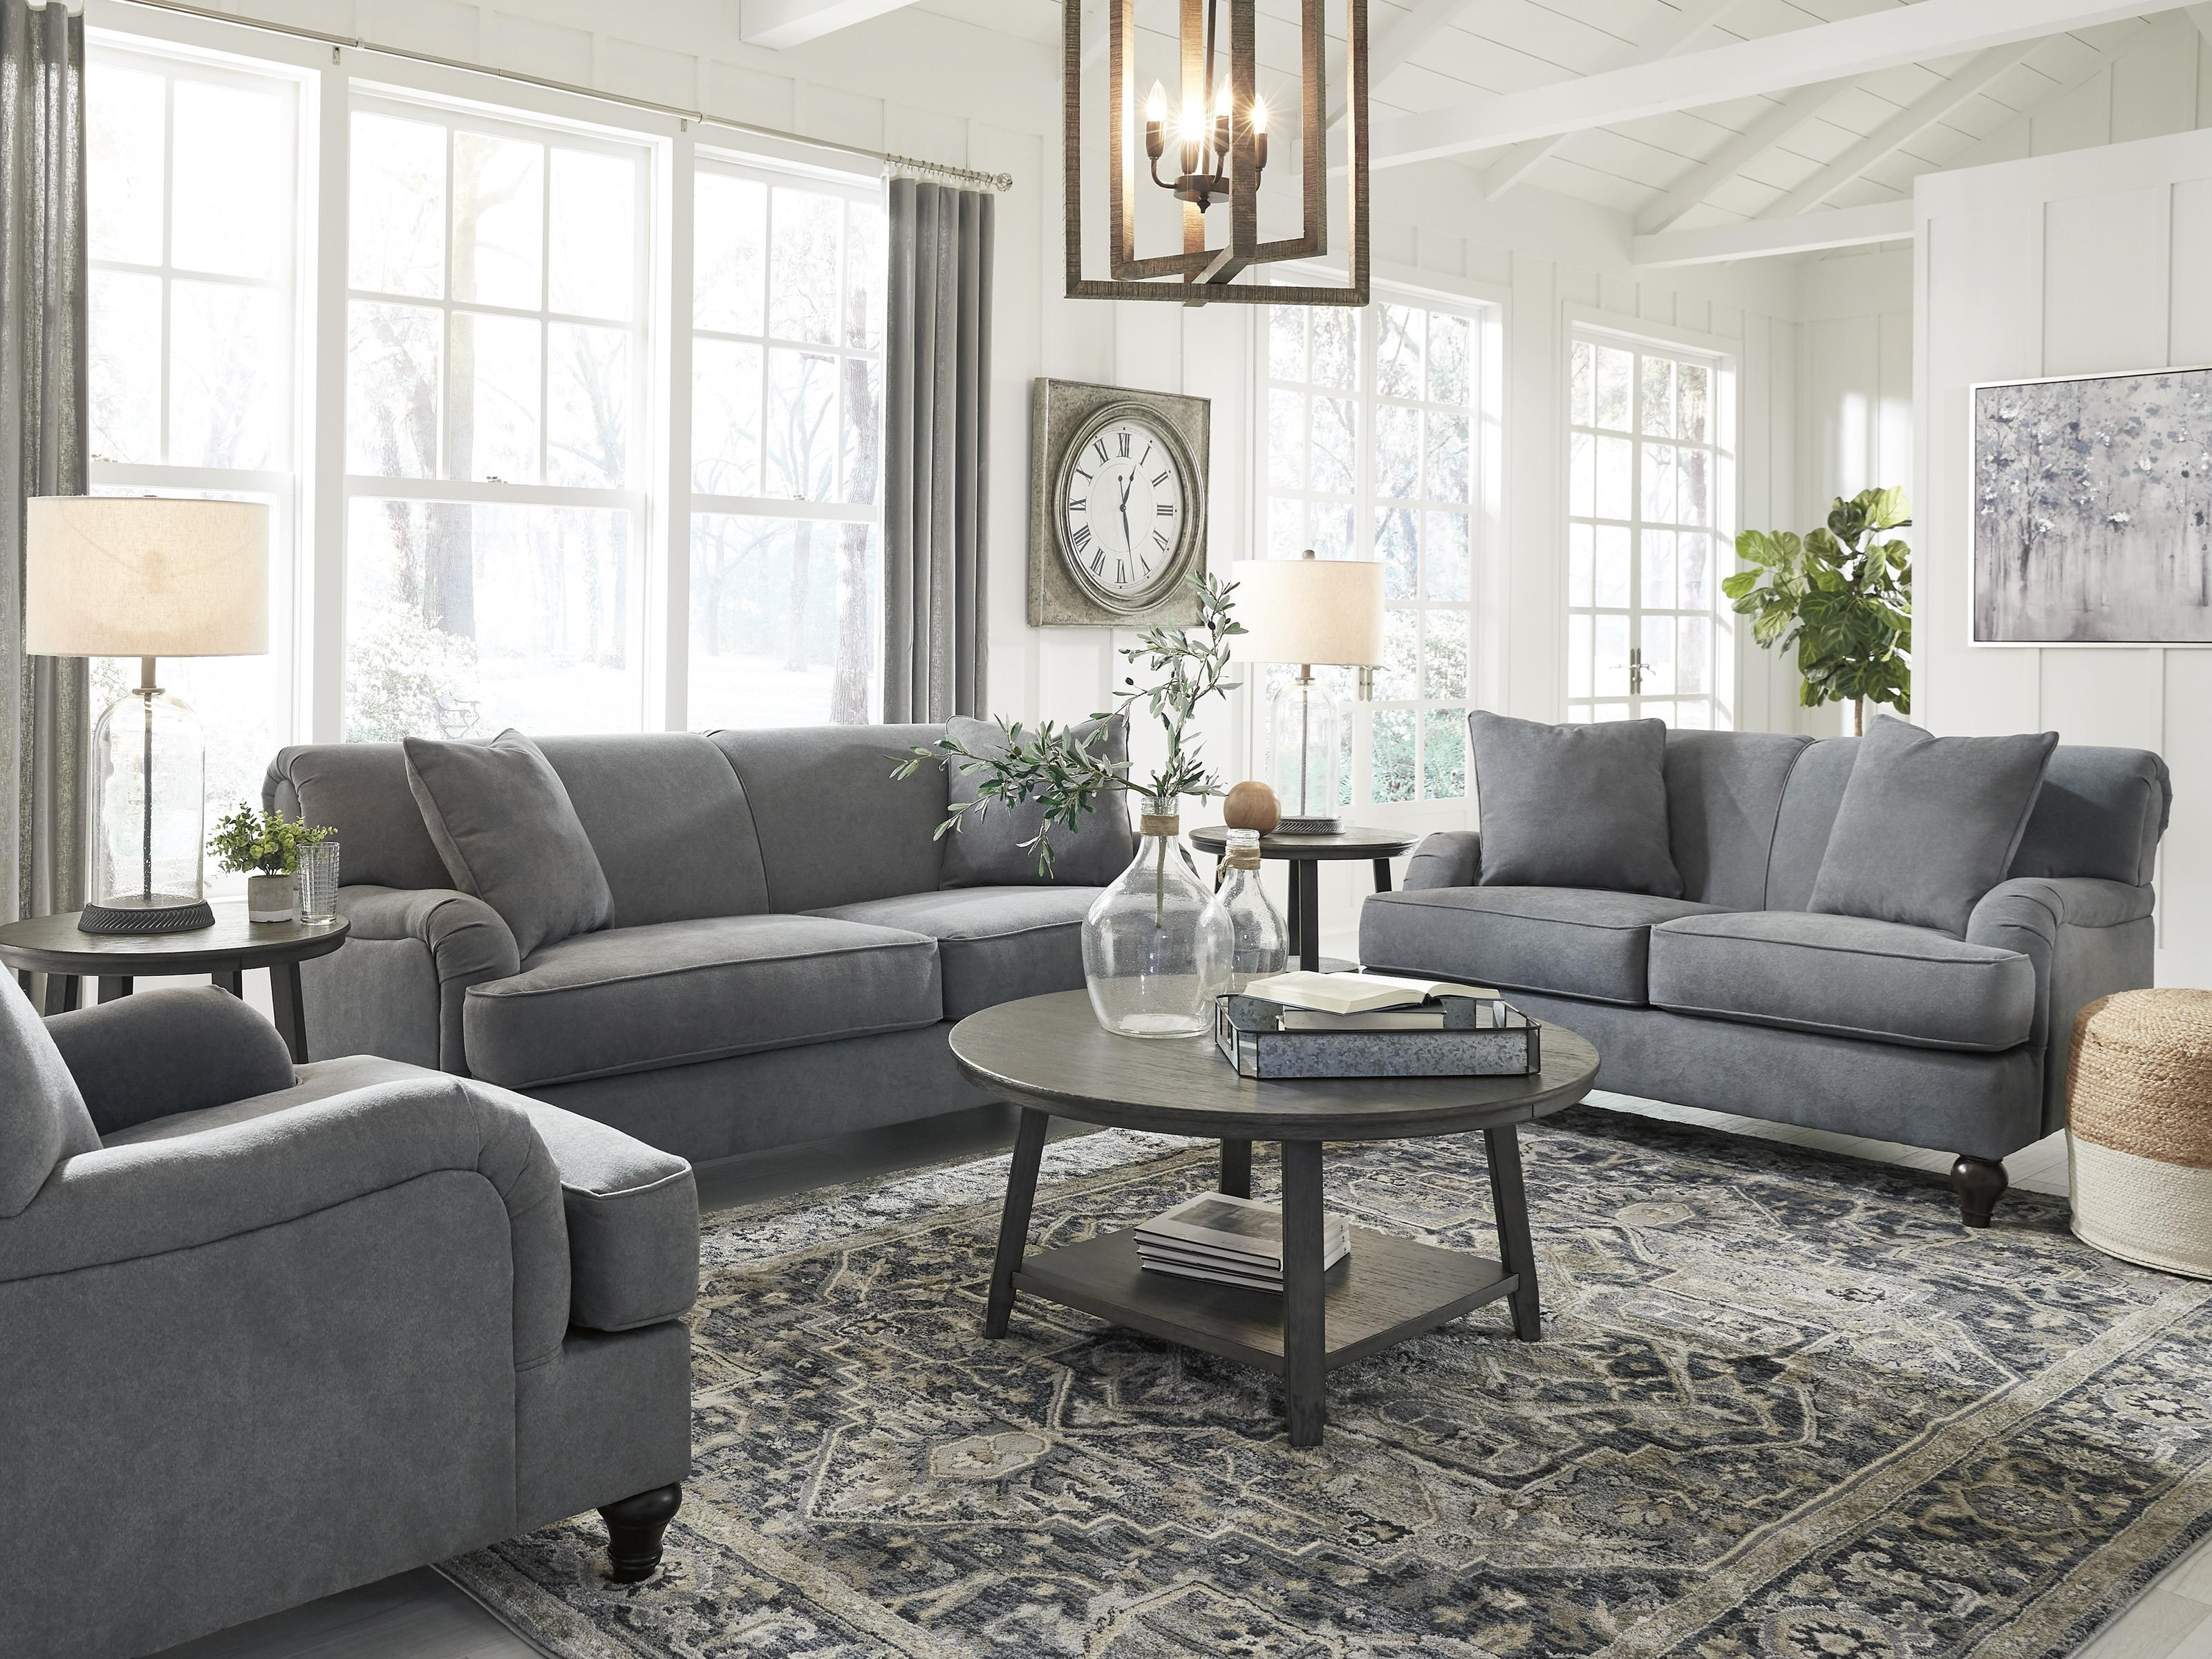 renly sofa and chair set